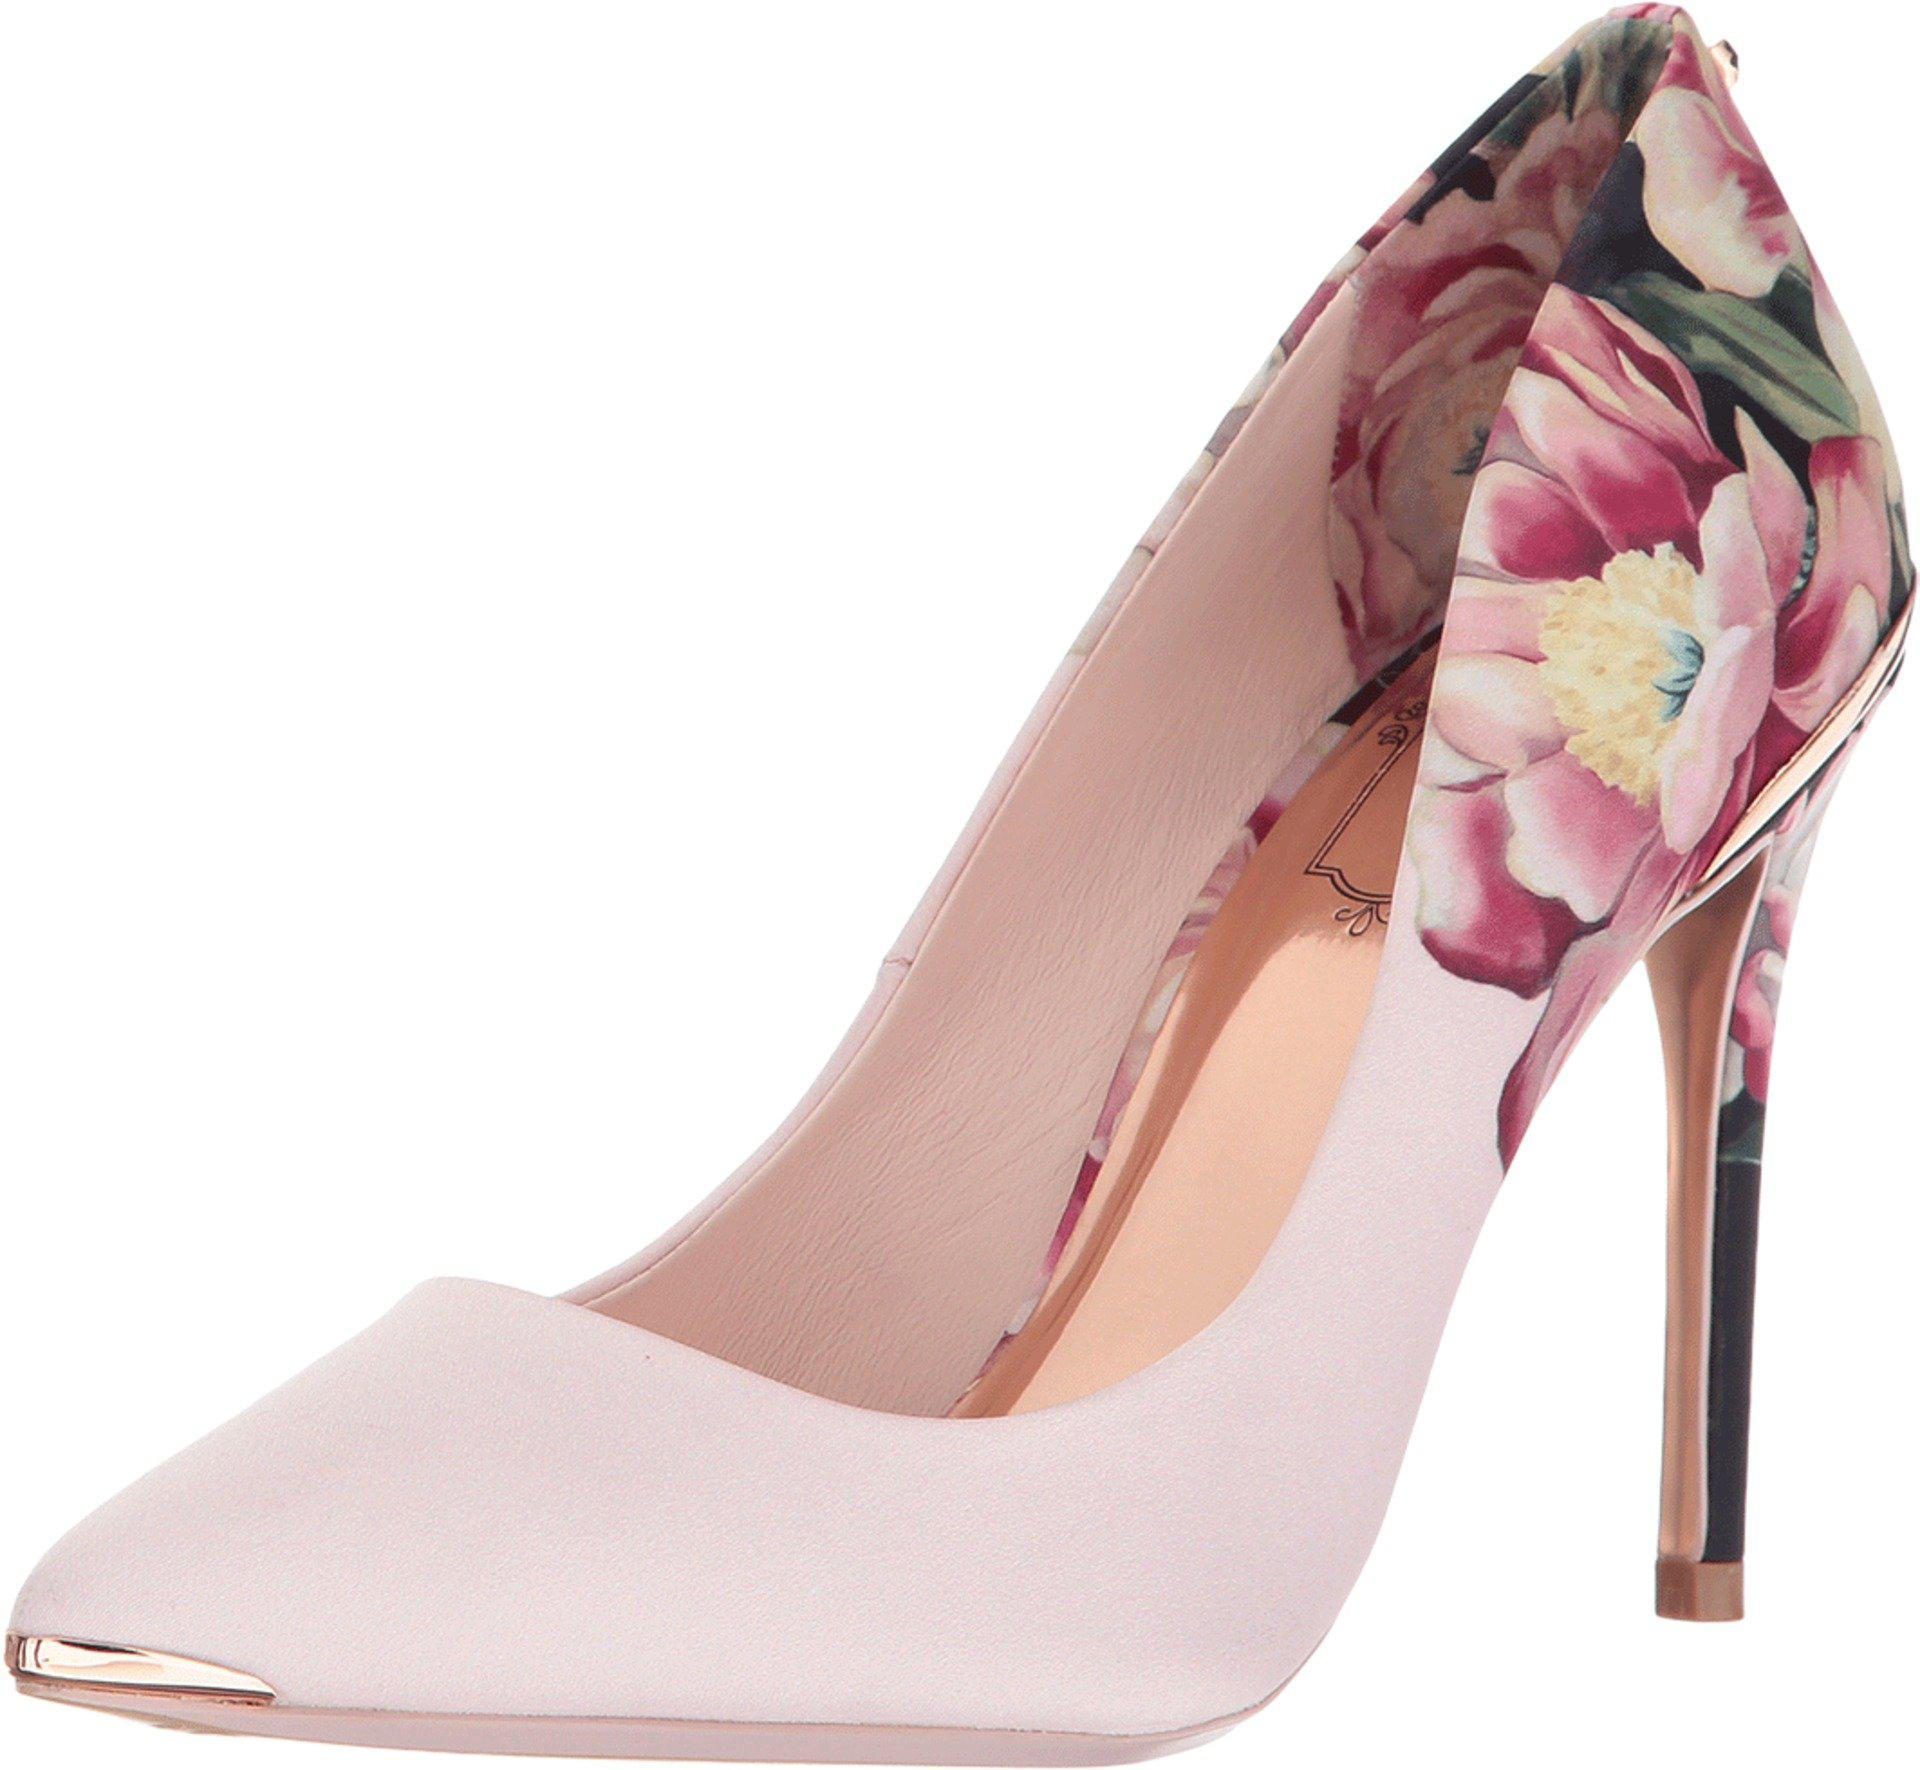 4a7a411c86a9 Lyst - Ted Baker Kawaap in Pink